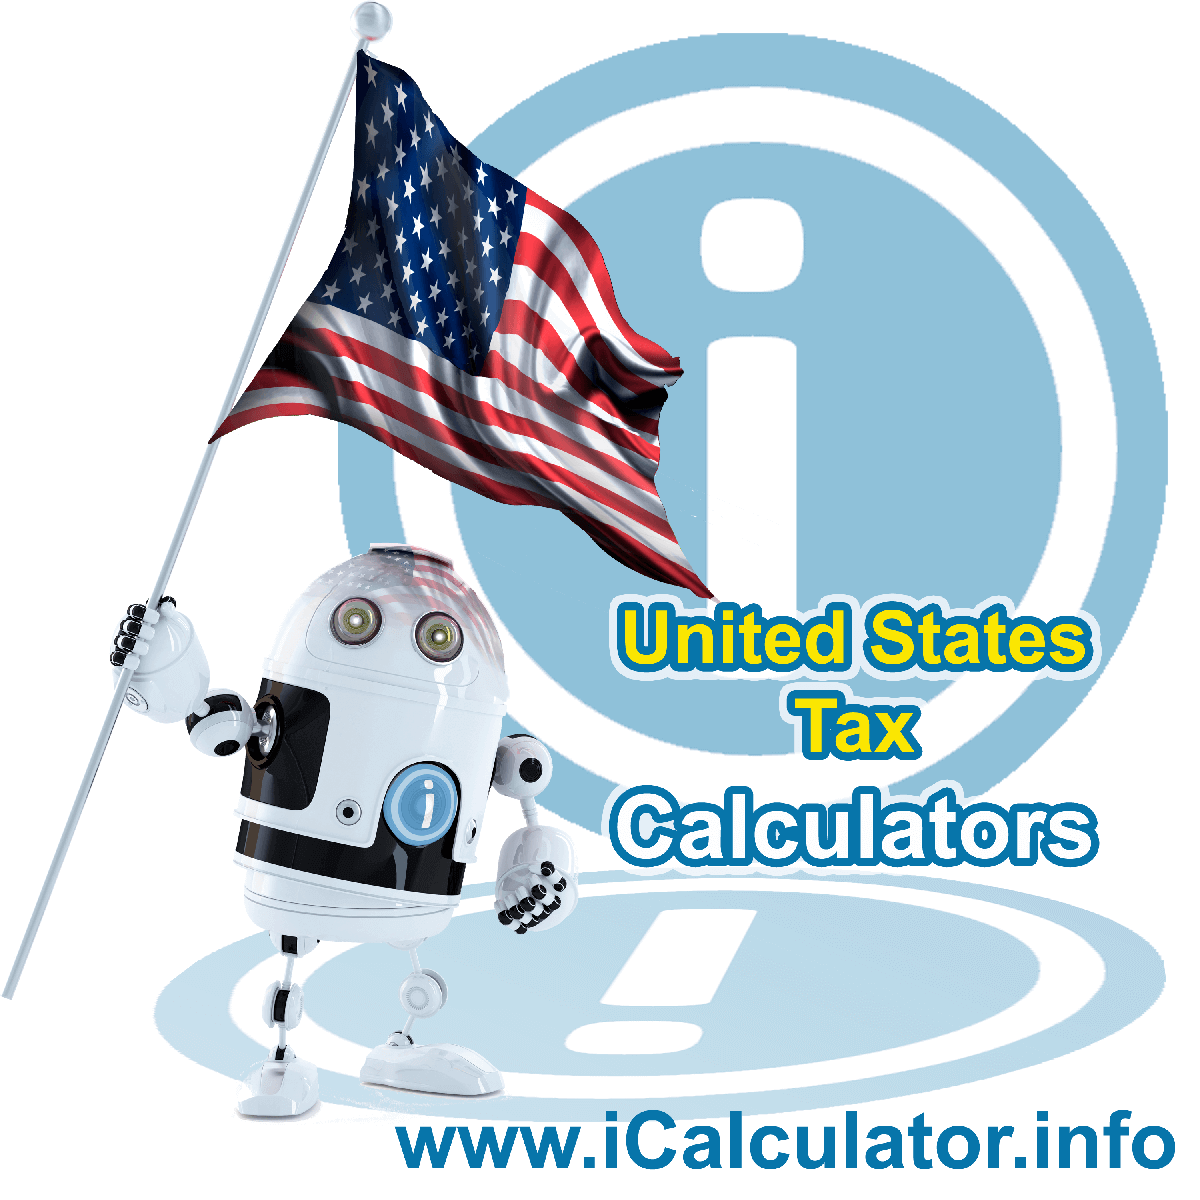 US Tax Calculator Calculator. This image shows the uUnited States flag and information relating to the tax formula for calculating your tax return in the united states in 2021 using the US Tax Calculator